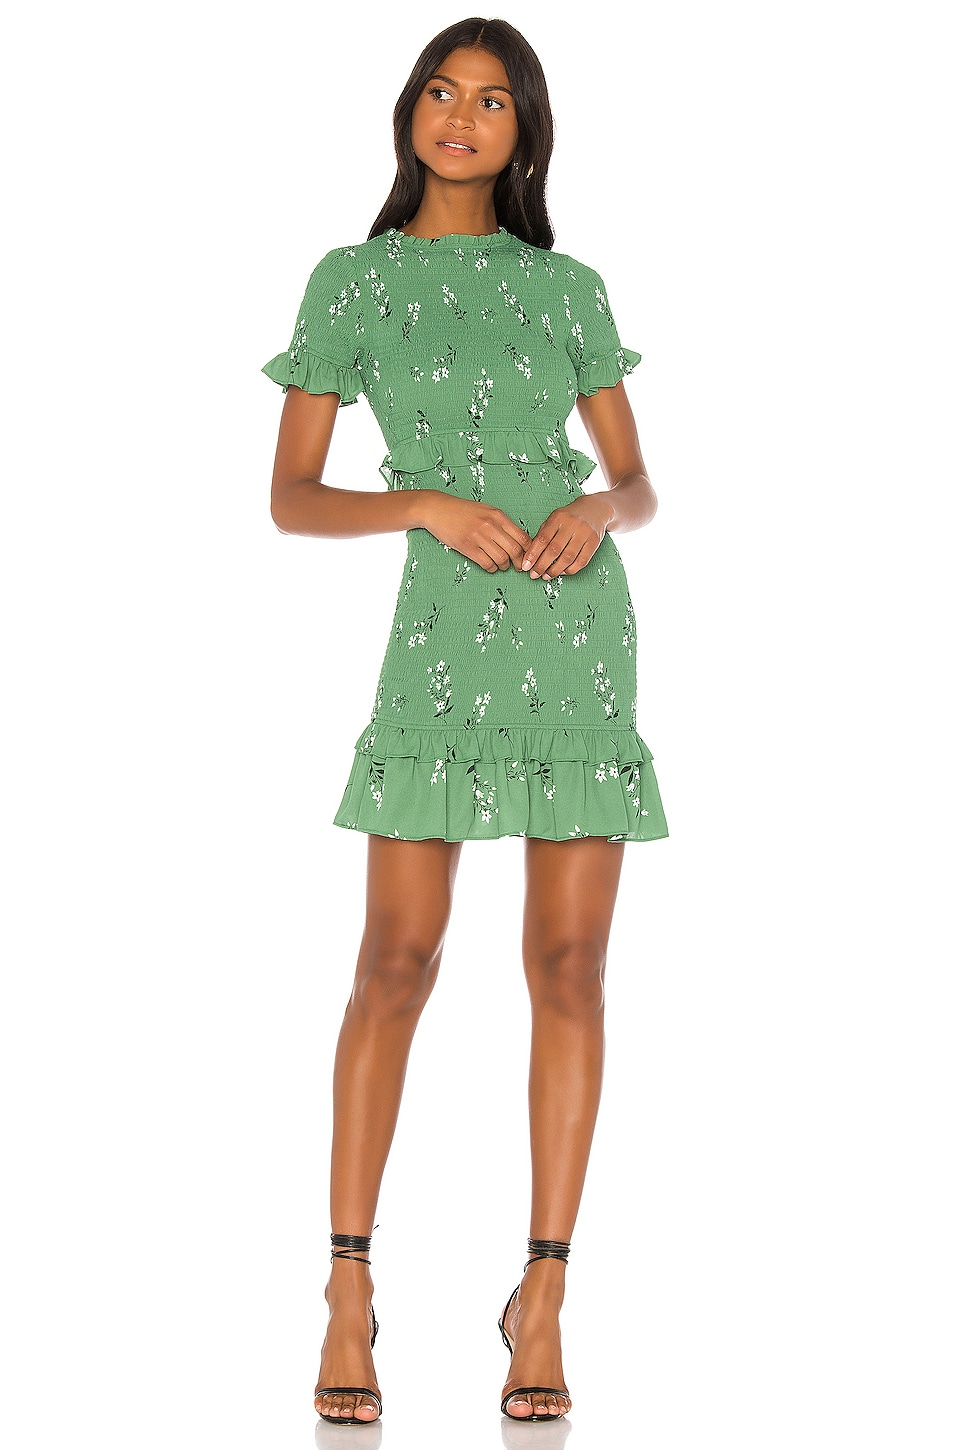 LIKELY Faye Dress in Green & Black